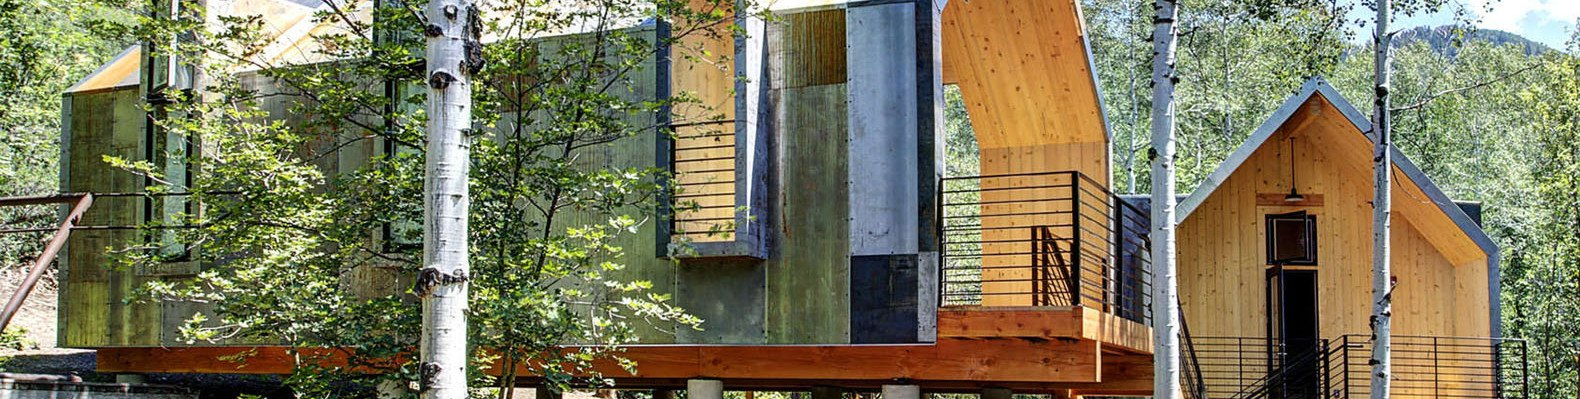 The Girl Scouts Of Utah Built Impressive Summer Cabins Without A Single  Drop Of Glue | Inhabitat   Green Design, Innovation, Architecture, Green  Building